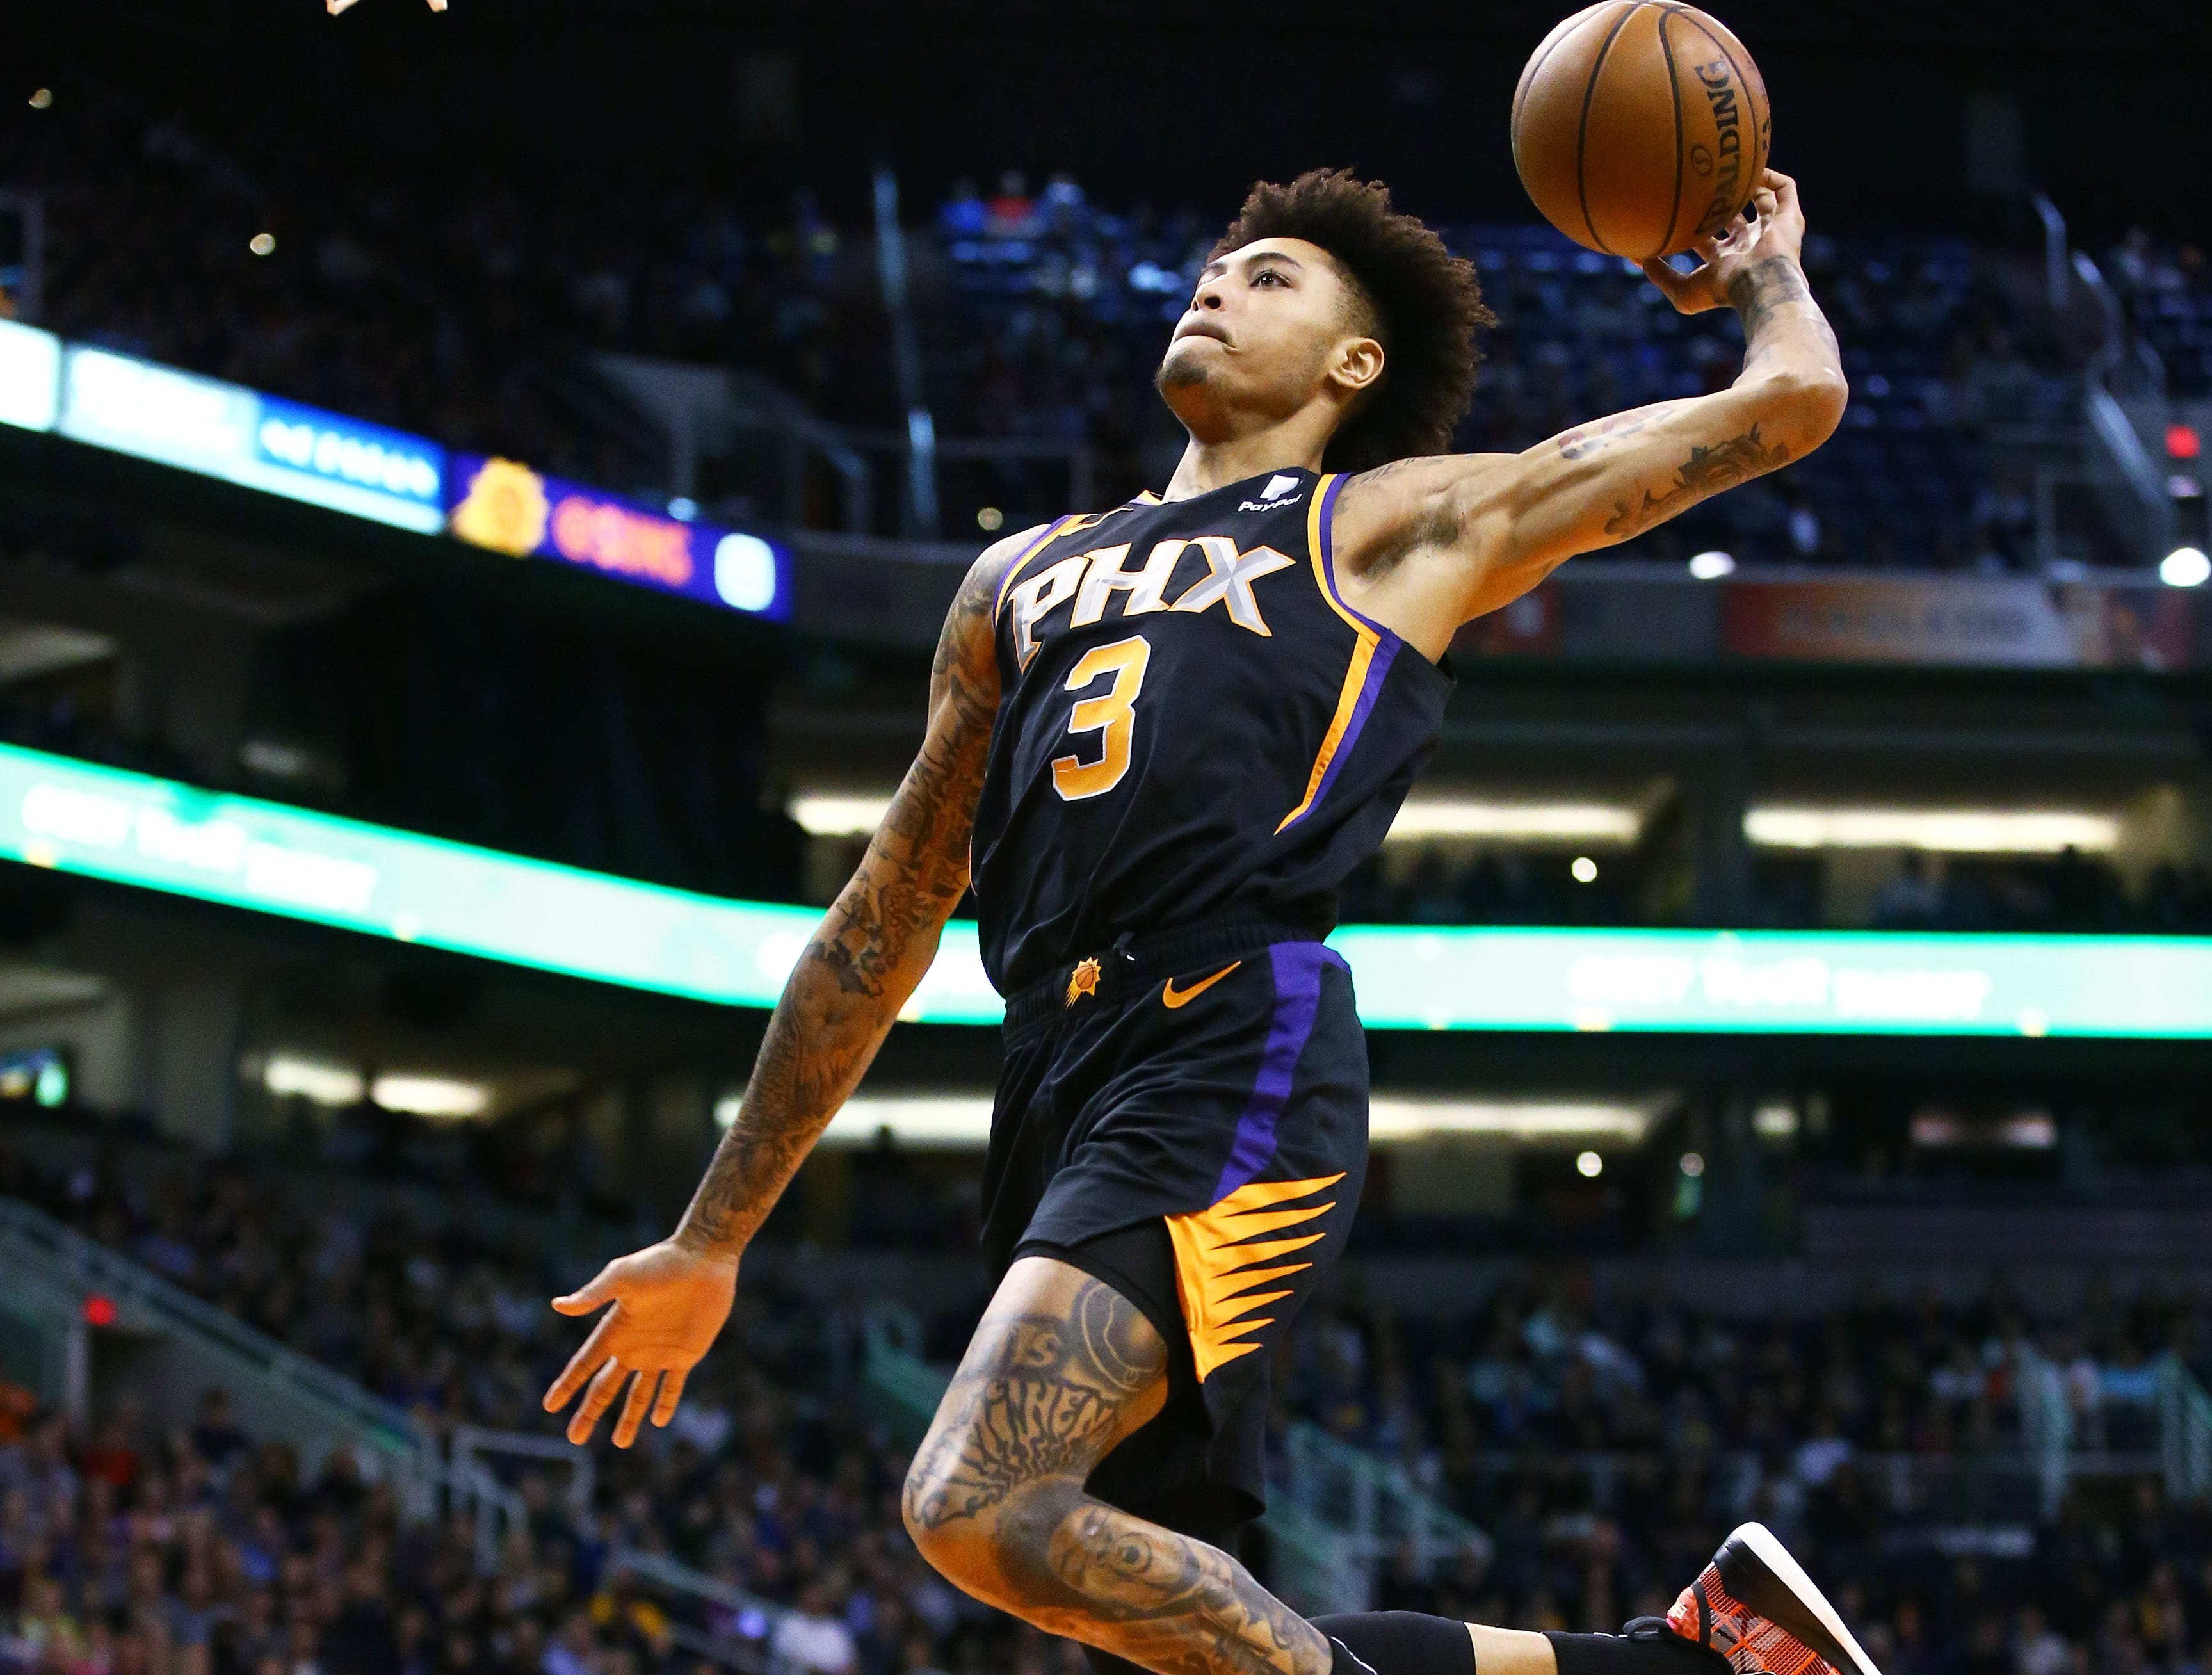 Phoenix Suns forward Kelly Oubre Jr. slam-dunks the ball against the Golden State Warriors in the first half on Feb. 8 at Talking Stick Resort Arena.